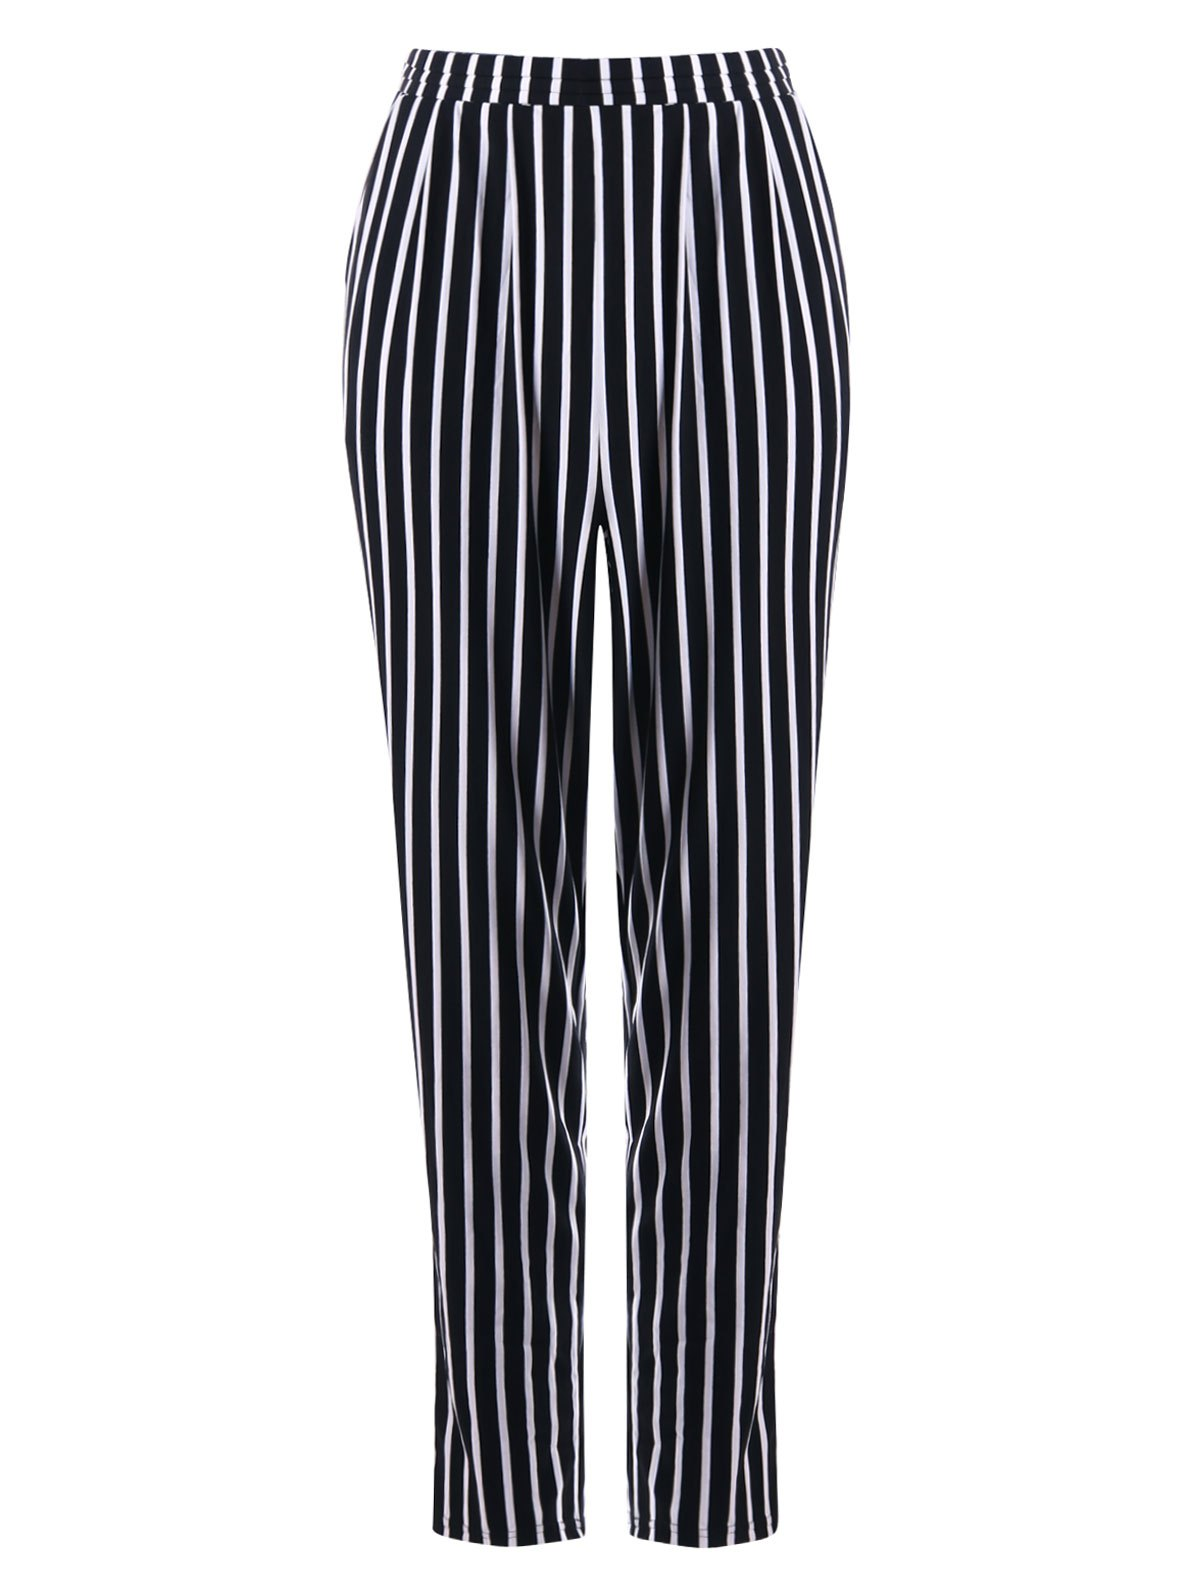 Casual Striped Tapered Pants - BLACK STRIPE XL